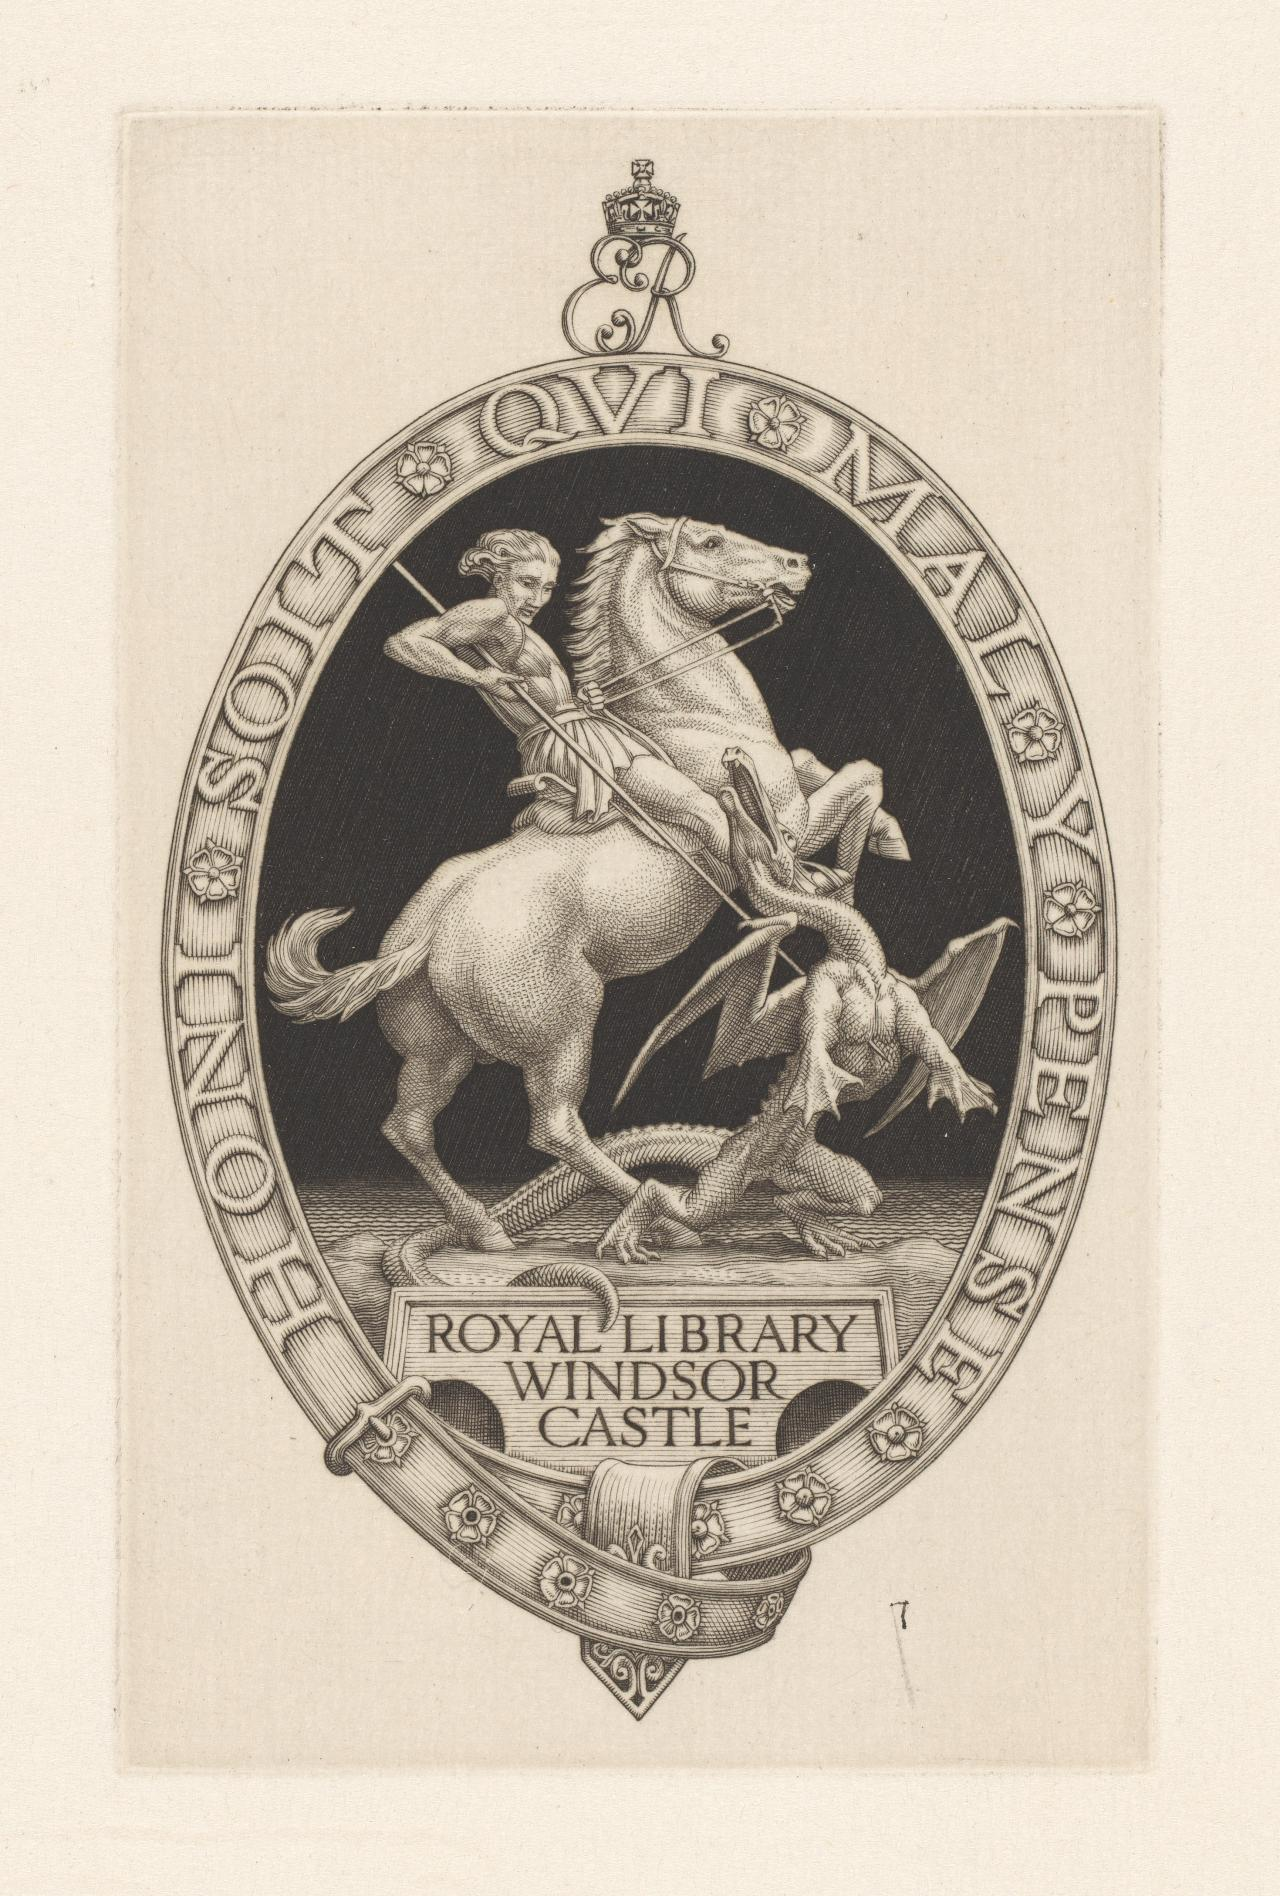 Royal Library, Windsor Castle